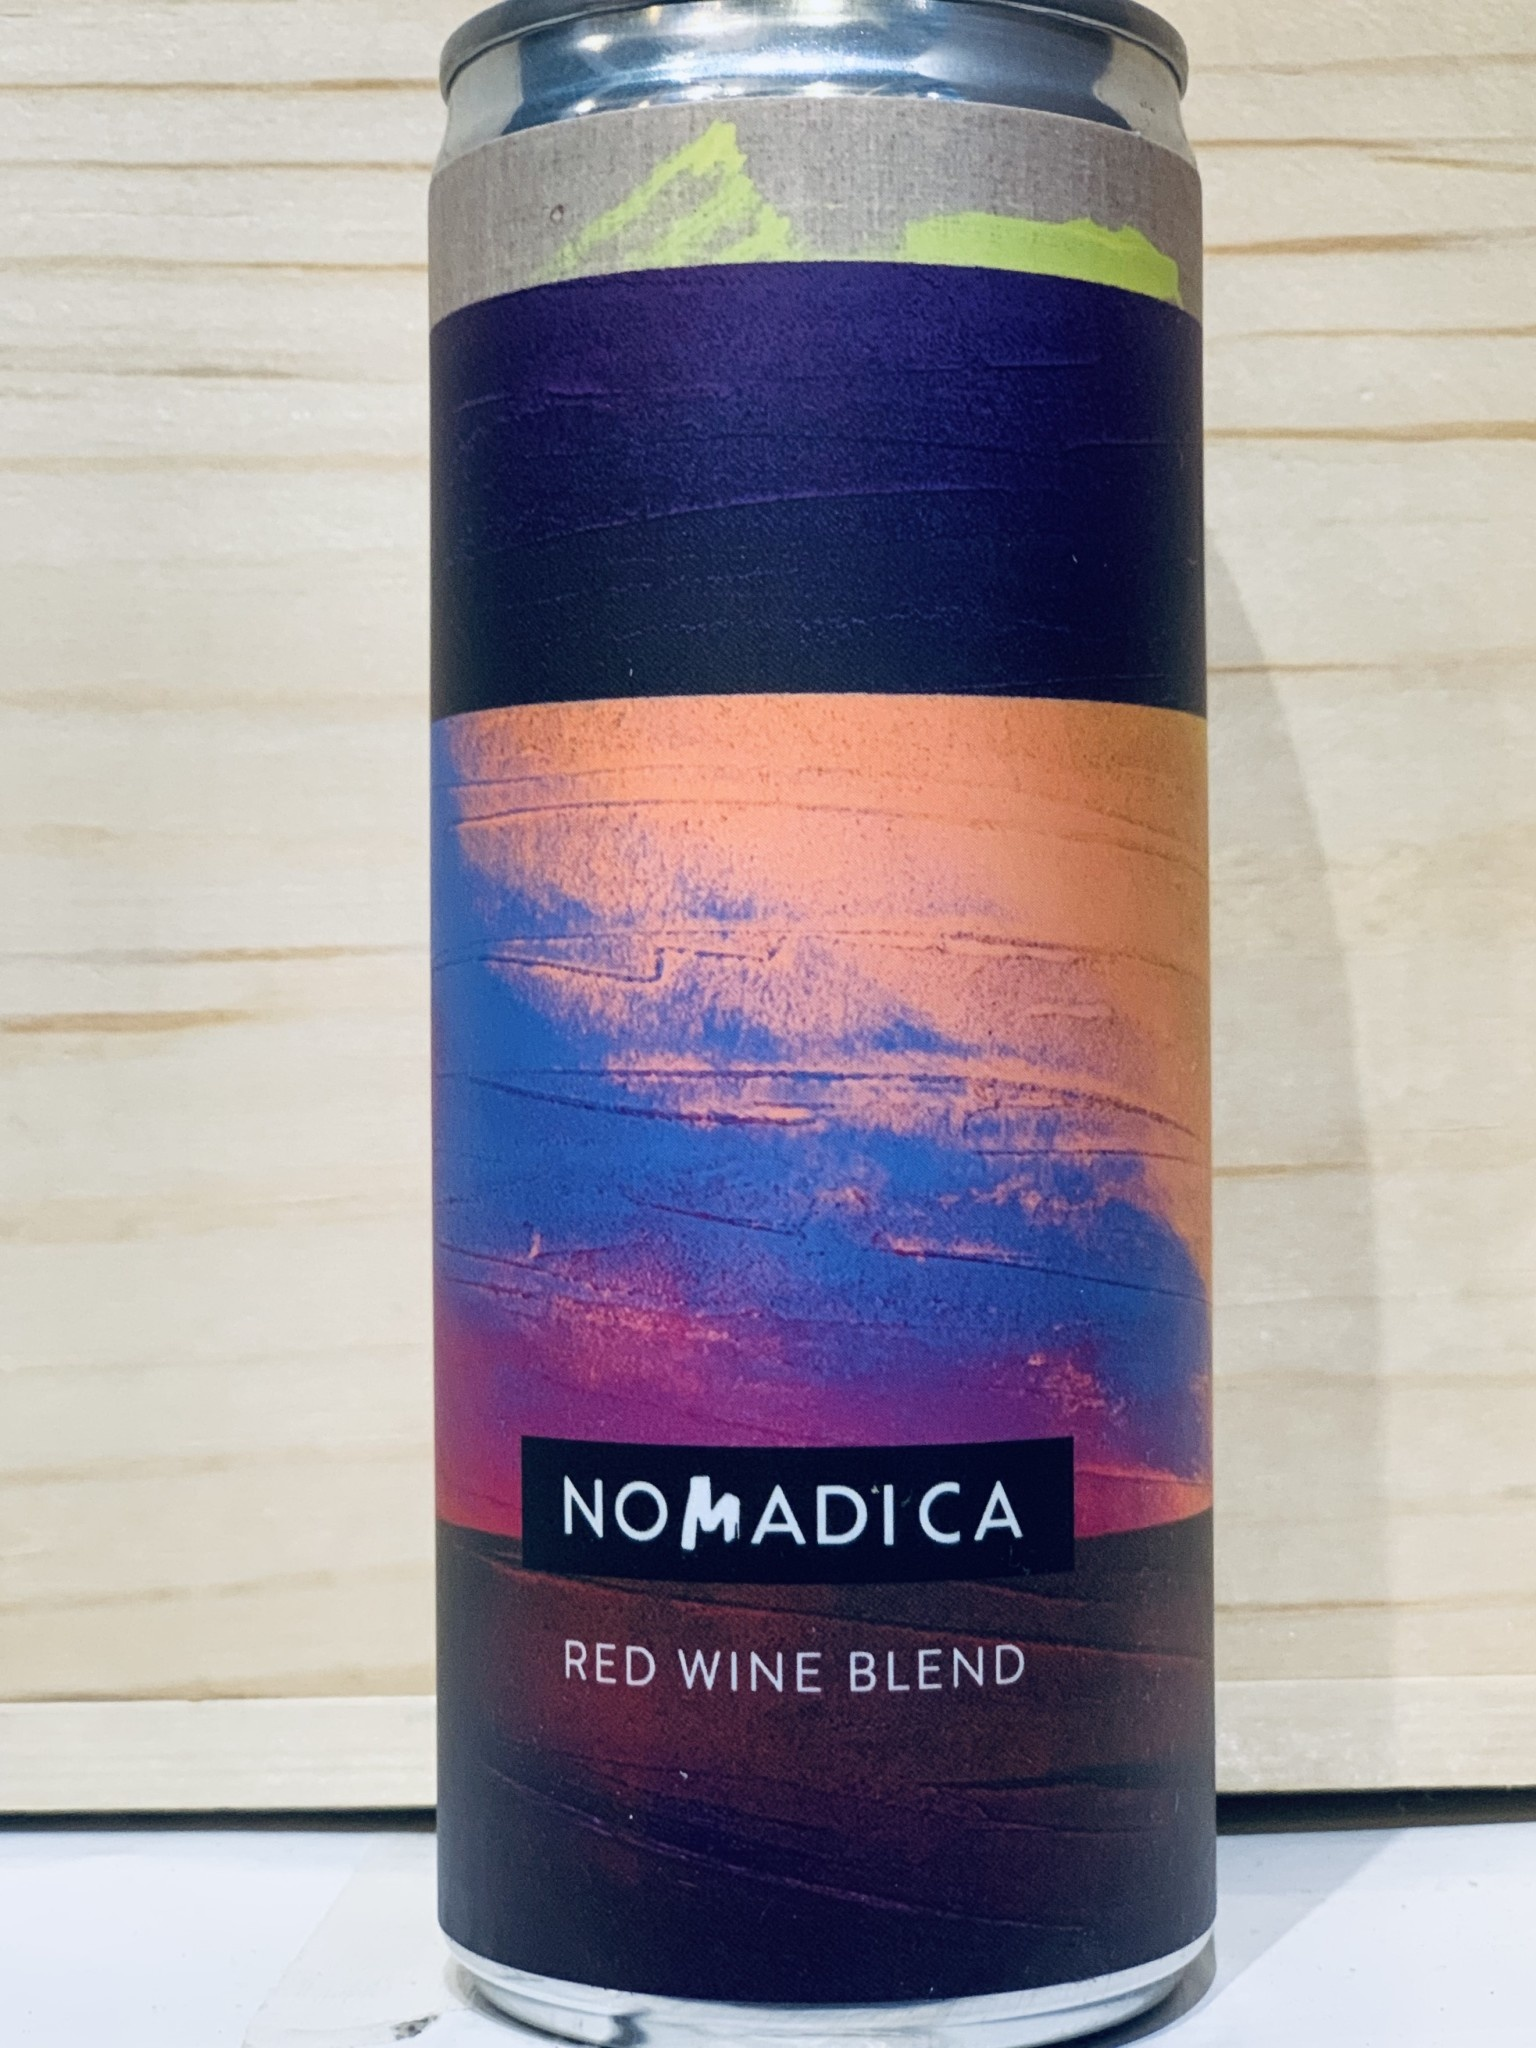 North Coast Red Blend 2017 Nomadica (250ml can wine)